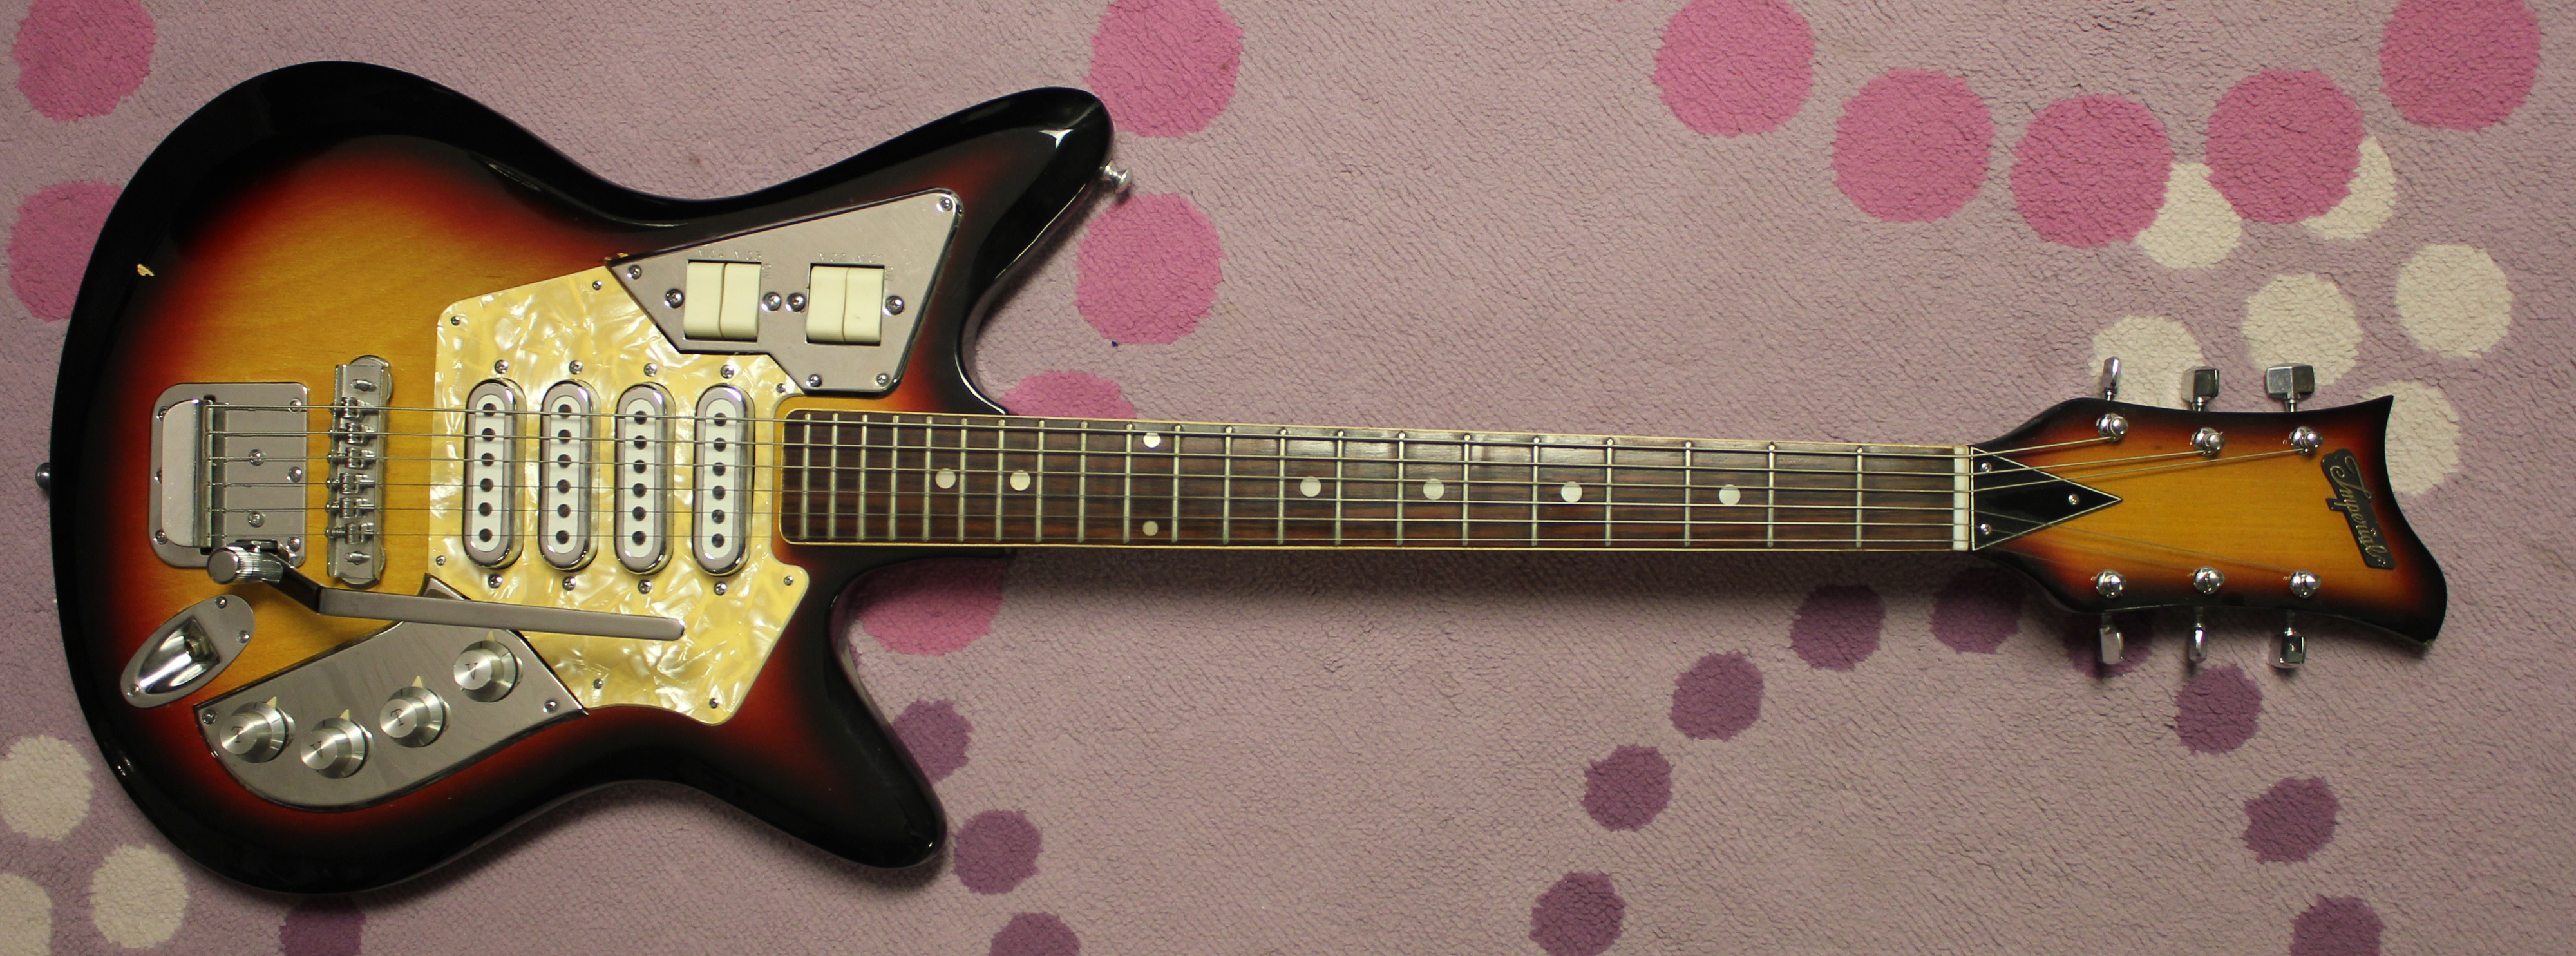 1968 Imperial Burns Japanese Electric Guitar Drowning In Guitars